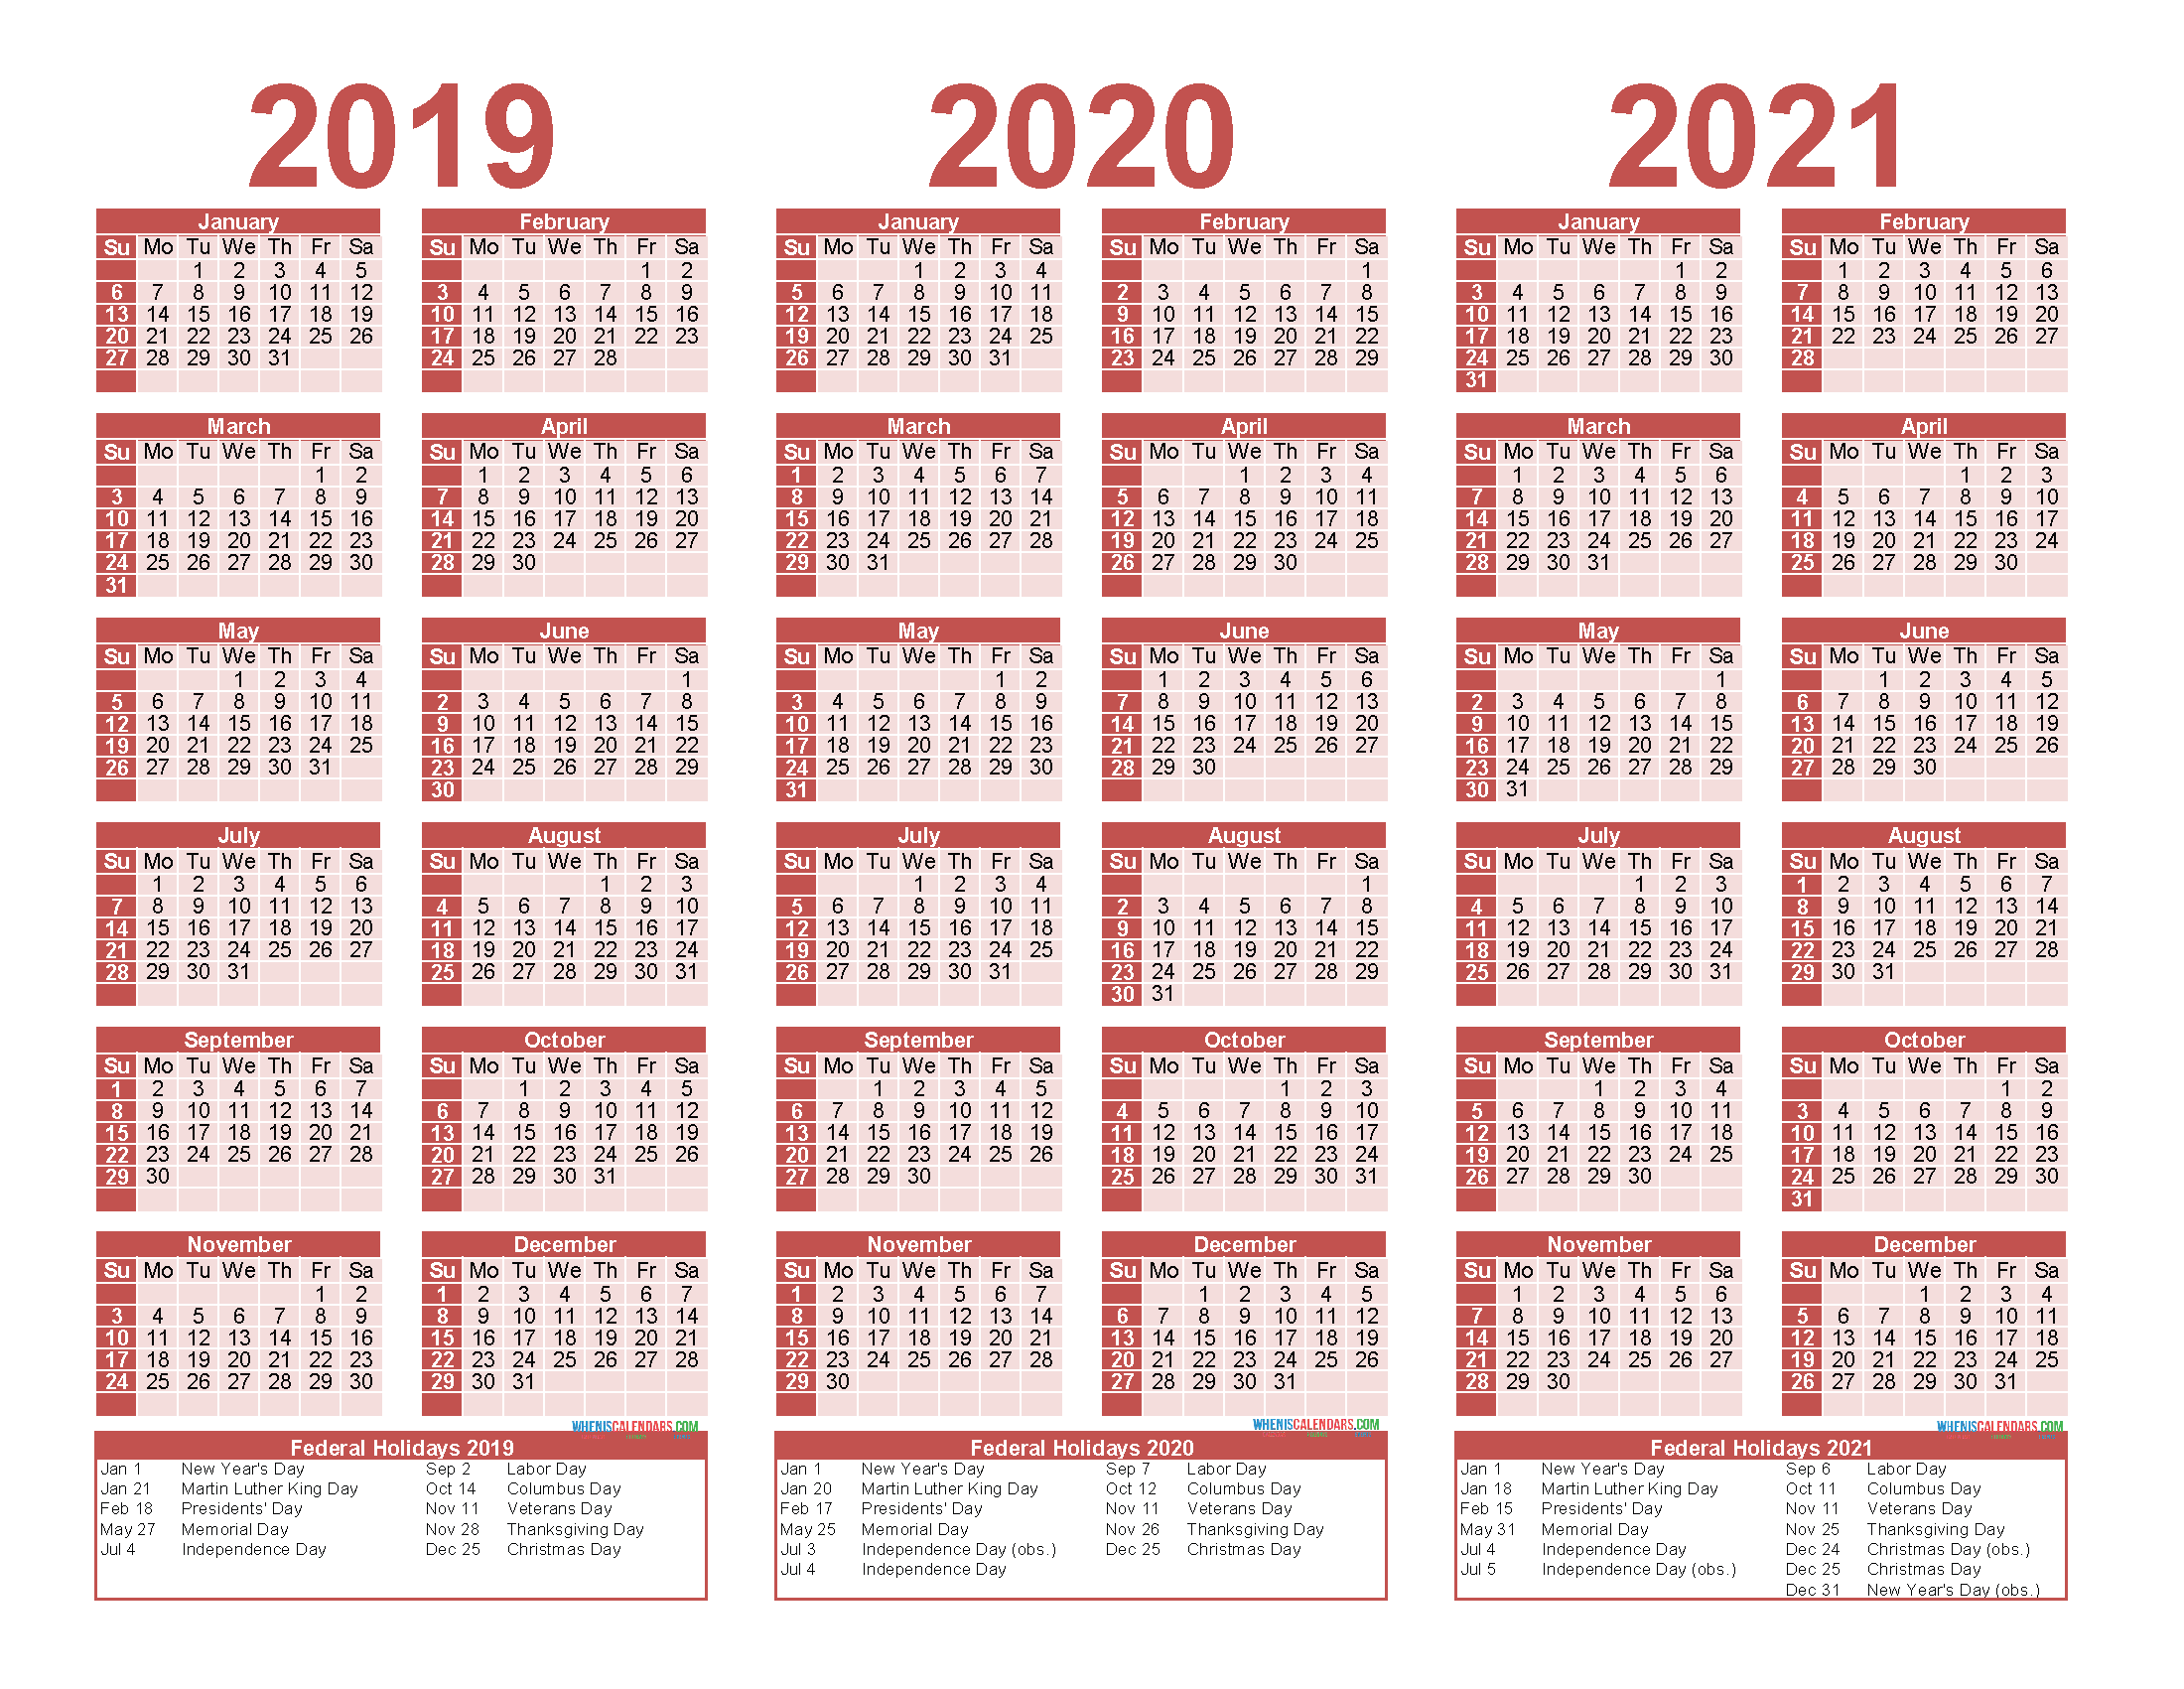 3 Year Calendar 2019 to 2021 Printable with Holidays